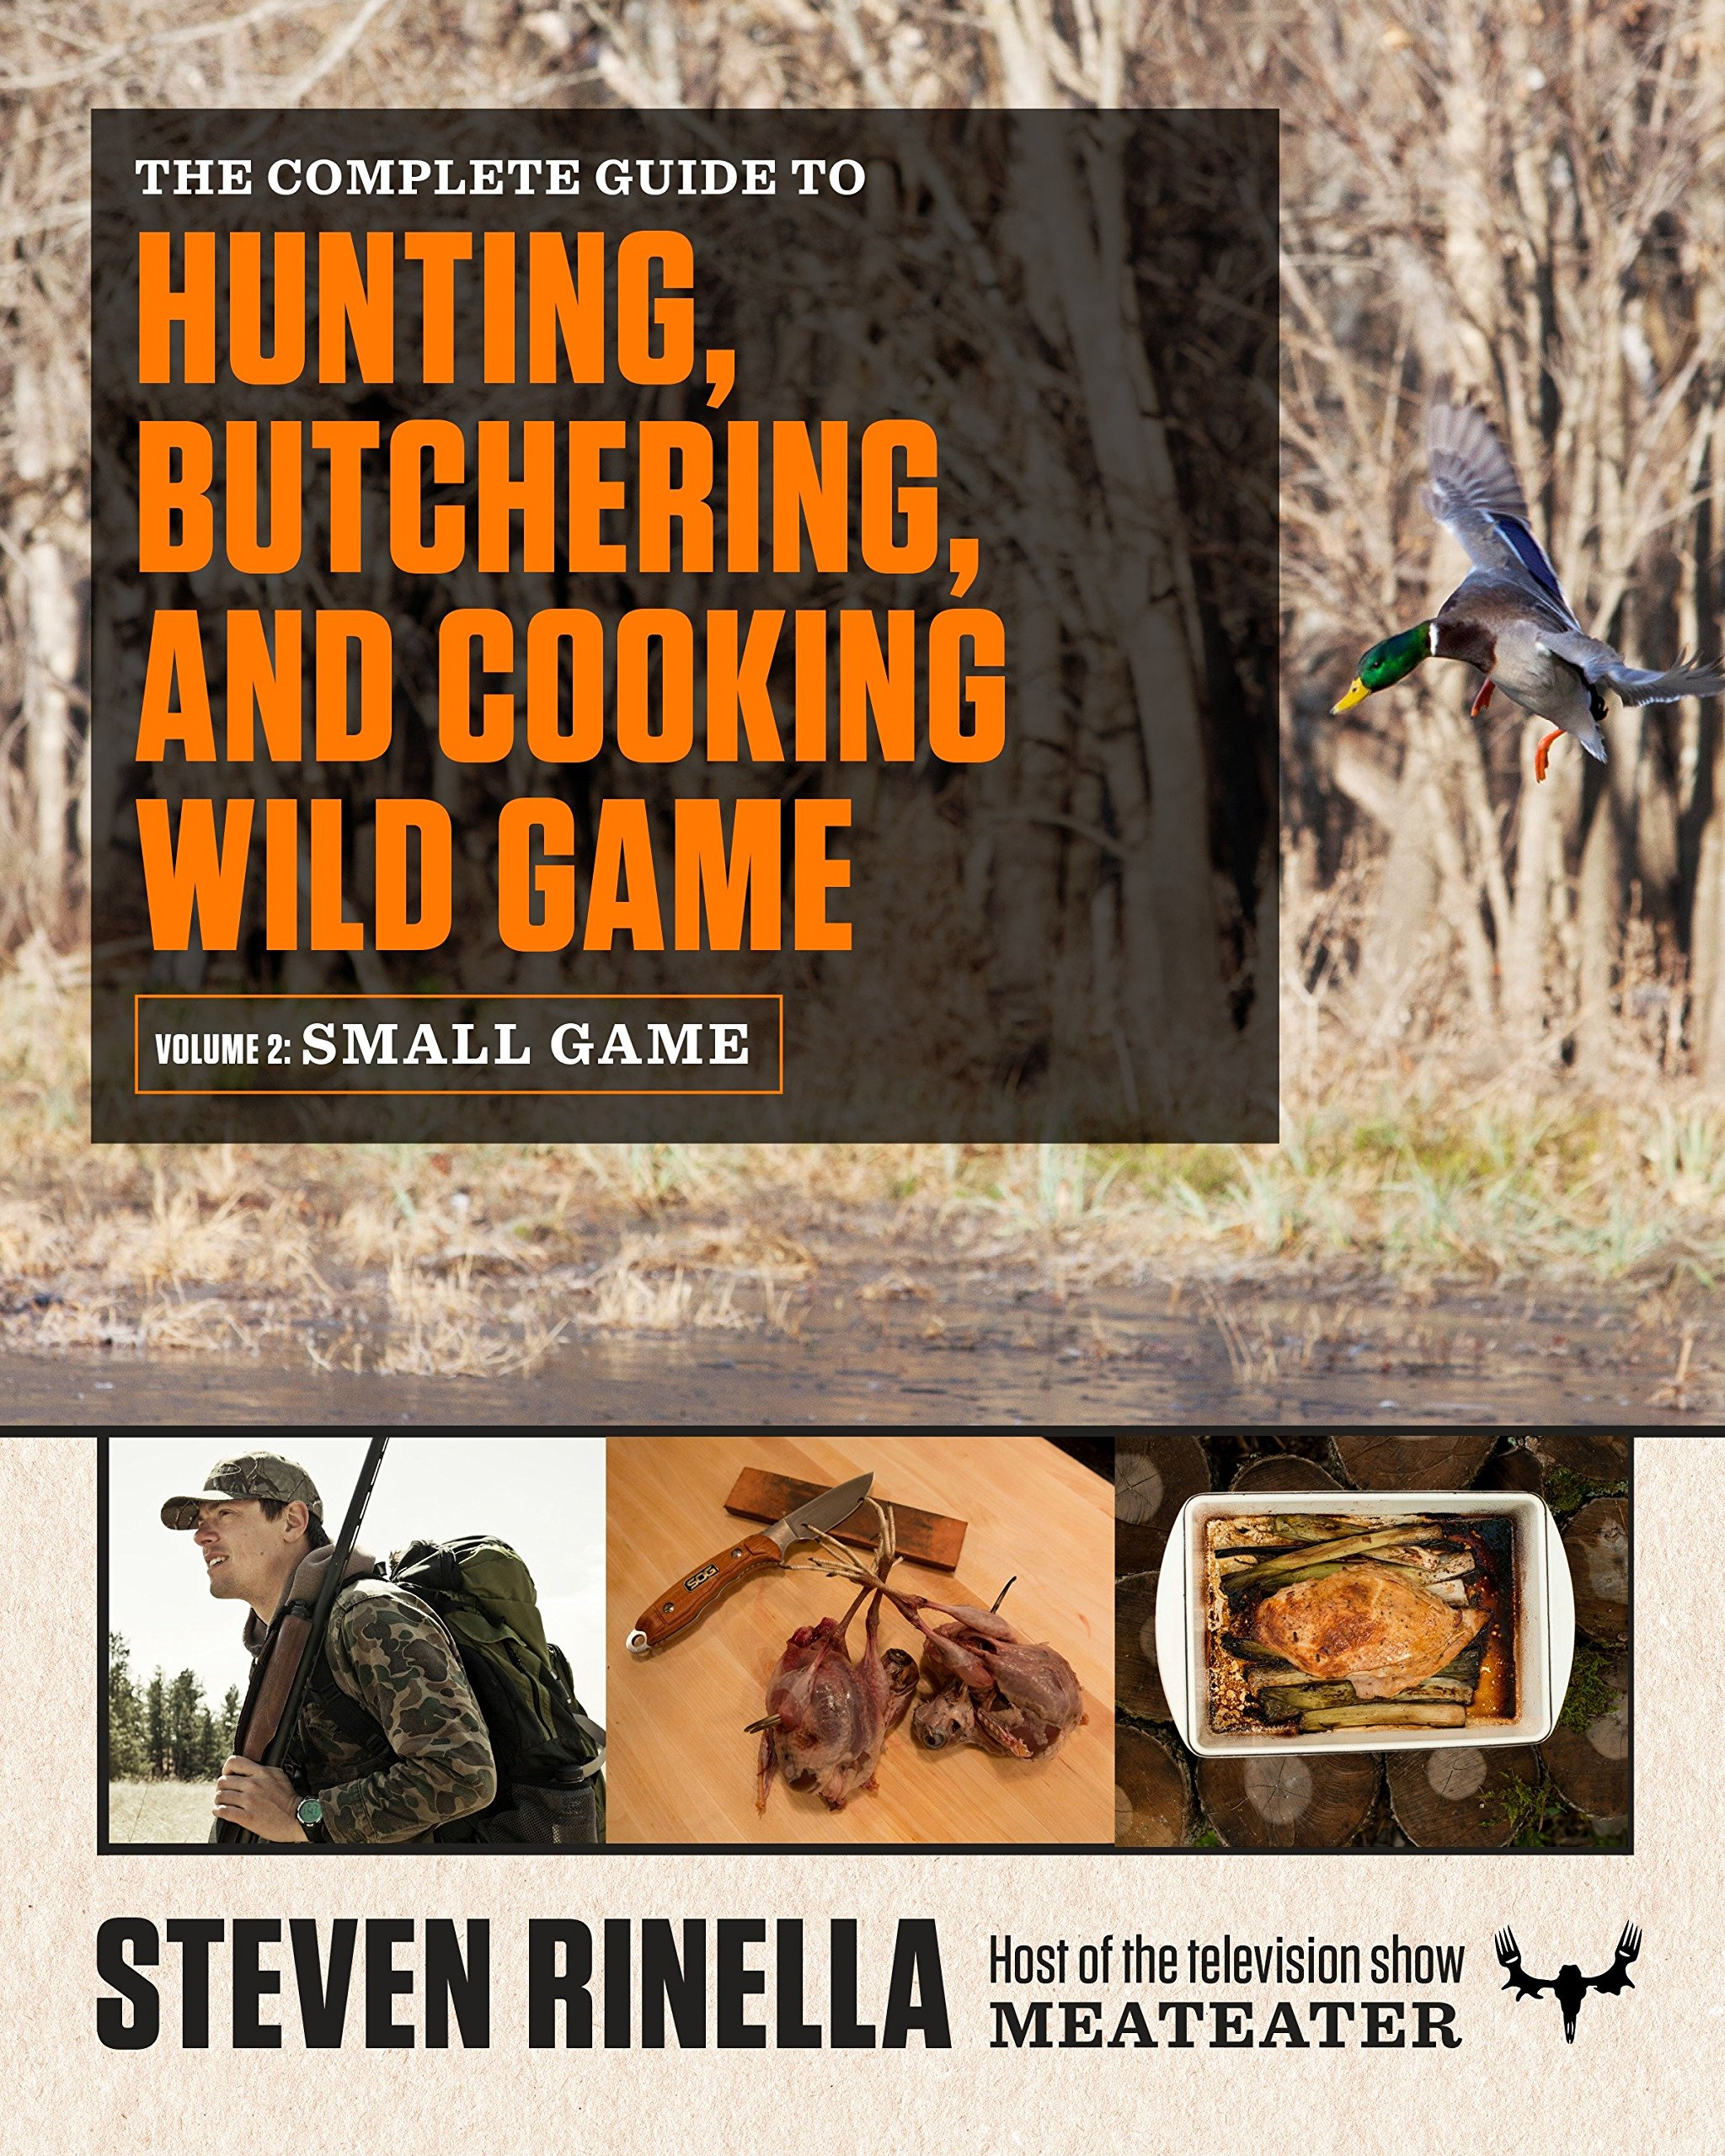 HUNTING BUTCHERING AND COOKING WILD GAME, VOLUME 2: SMALL GAME - A comprehensive small-game hunting guide for hunters ranging from first-time novices to seasoned experts, with photography by renowned outdoor photographer John HafnerSteven Rinella was raised in a hunting family and has been pursuing wild game his entire life. In this first-ever complete guide to hunting—from hunting wild game to butchering and cooking it—the host of the popular hunting show MeatEater shares his own expertise with us, and imparts strategies and tactics from many of the most experienced hunters in the United States as well.Purchase on Amazon